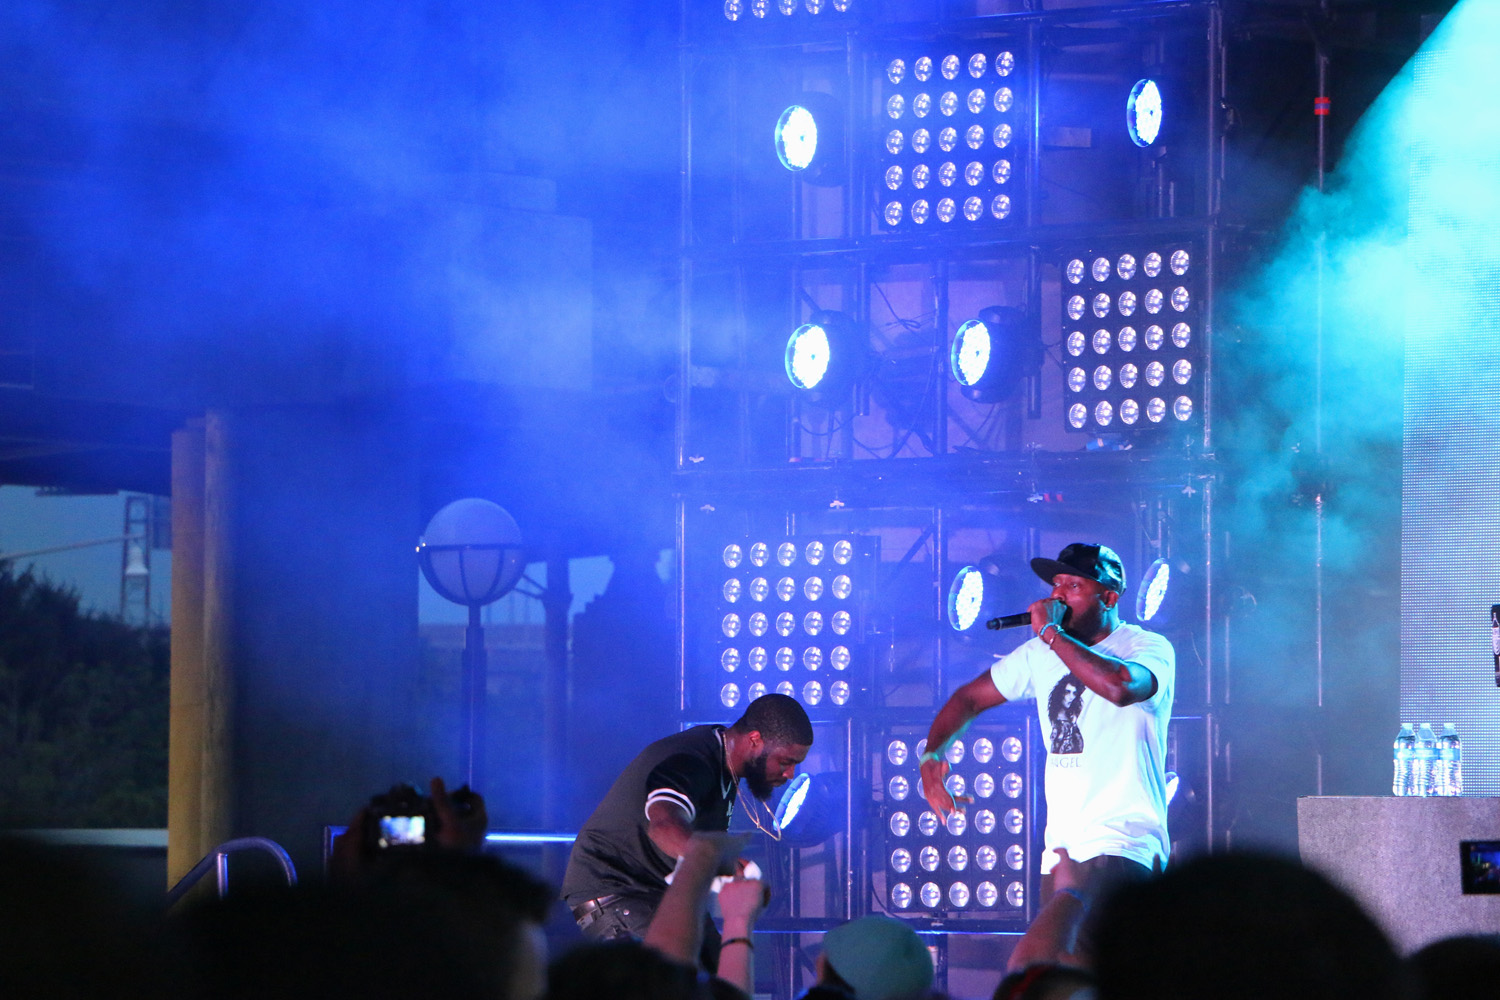 Big K.R.I.T., left, performs with special guest Talib Kweli, right, at the Forecastle Festival in Louisville, Ky., on Friday, July 17, 2015. (MTSU Sidelines / John Connor Coulston)